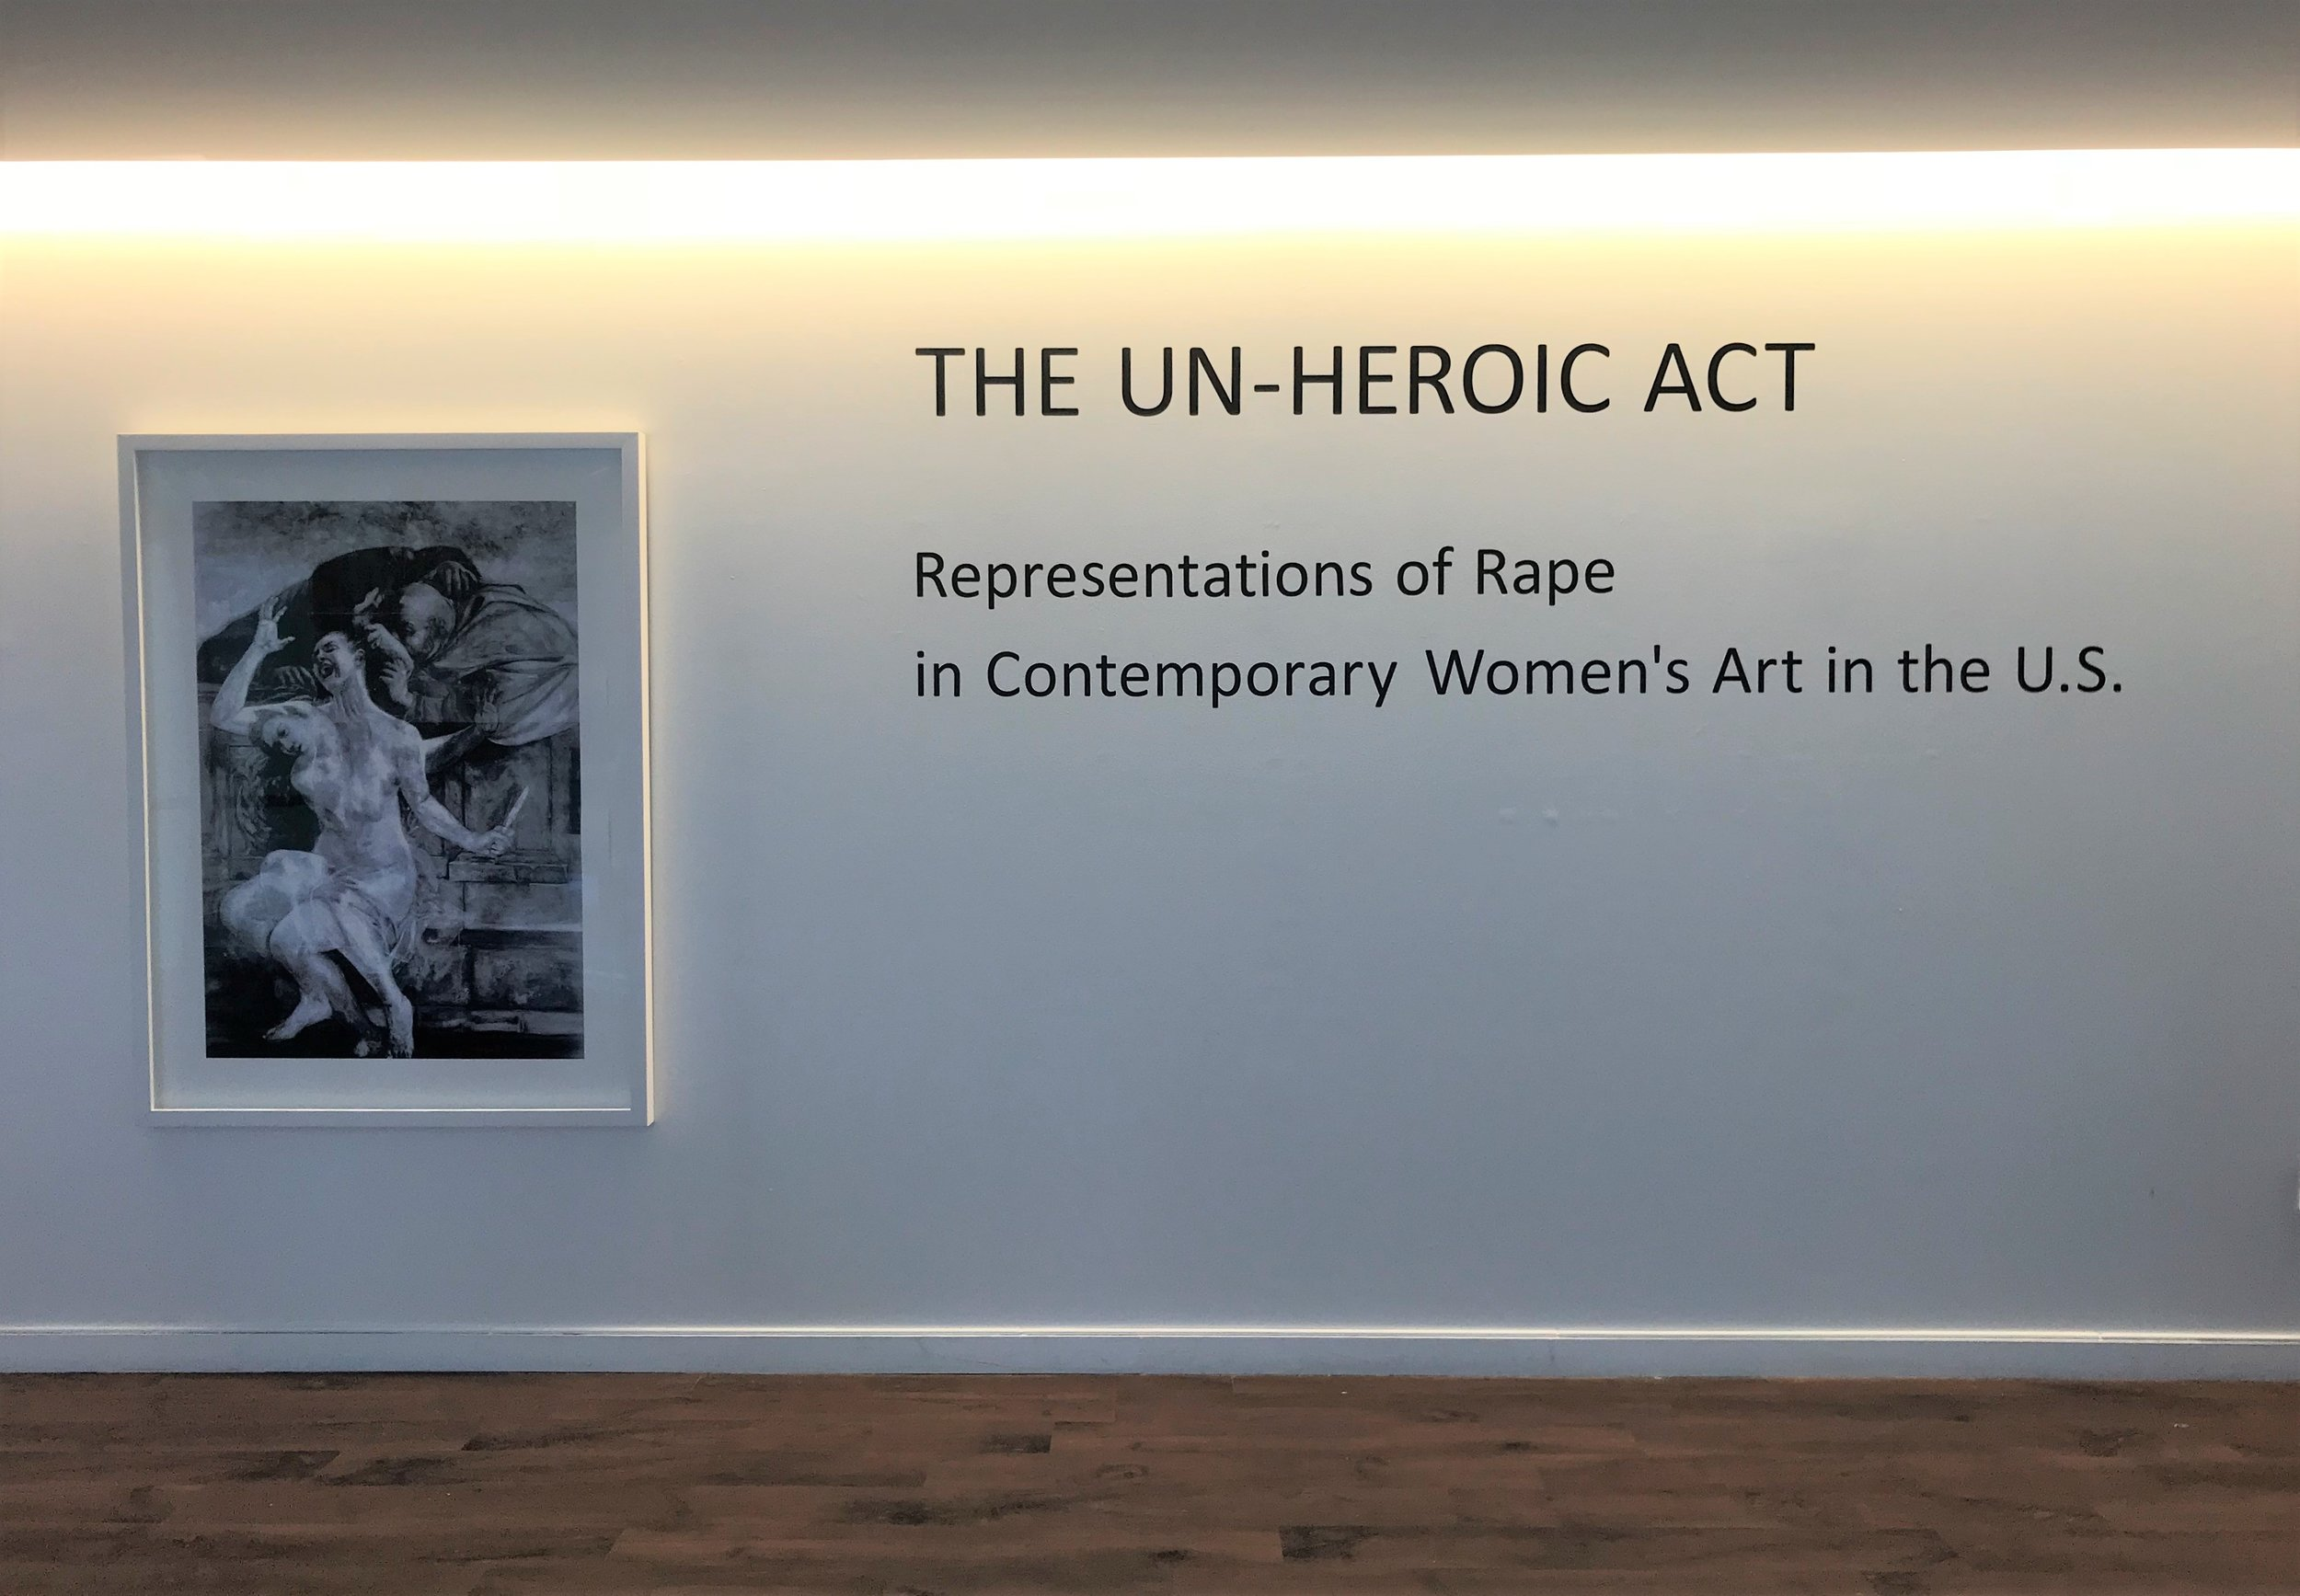 5_Kathleen Gilje, Susanna and the Elders, Restored, 1998-2018, installation view, The Un-Heroic Act, Shiva Gallery JJC. Photo Monika Fabijanska